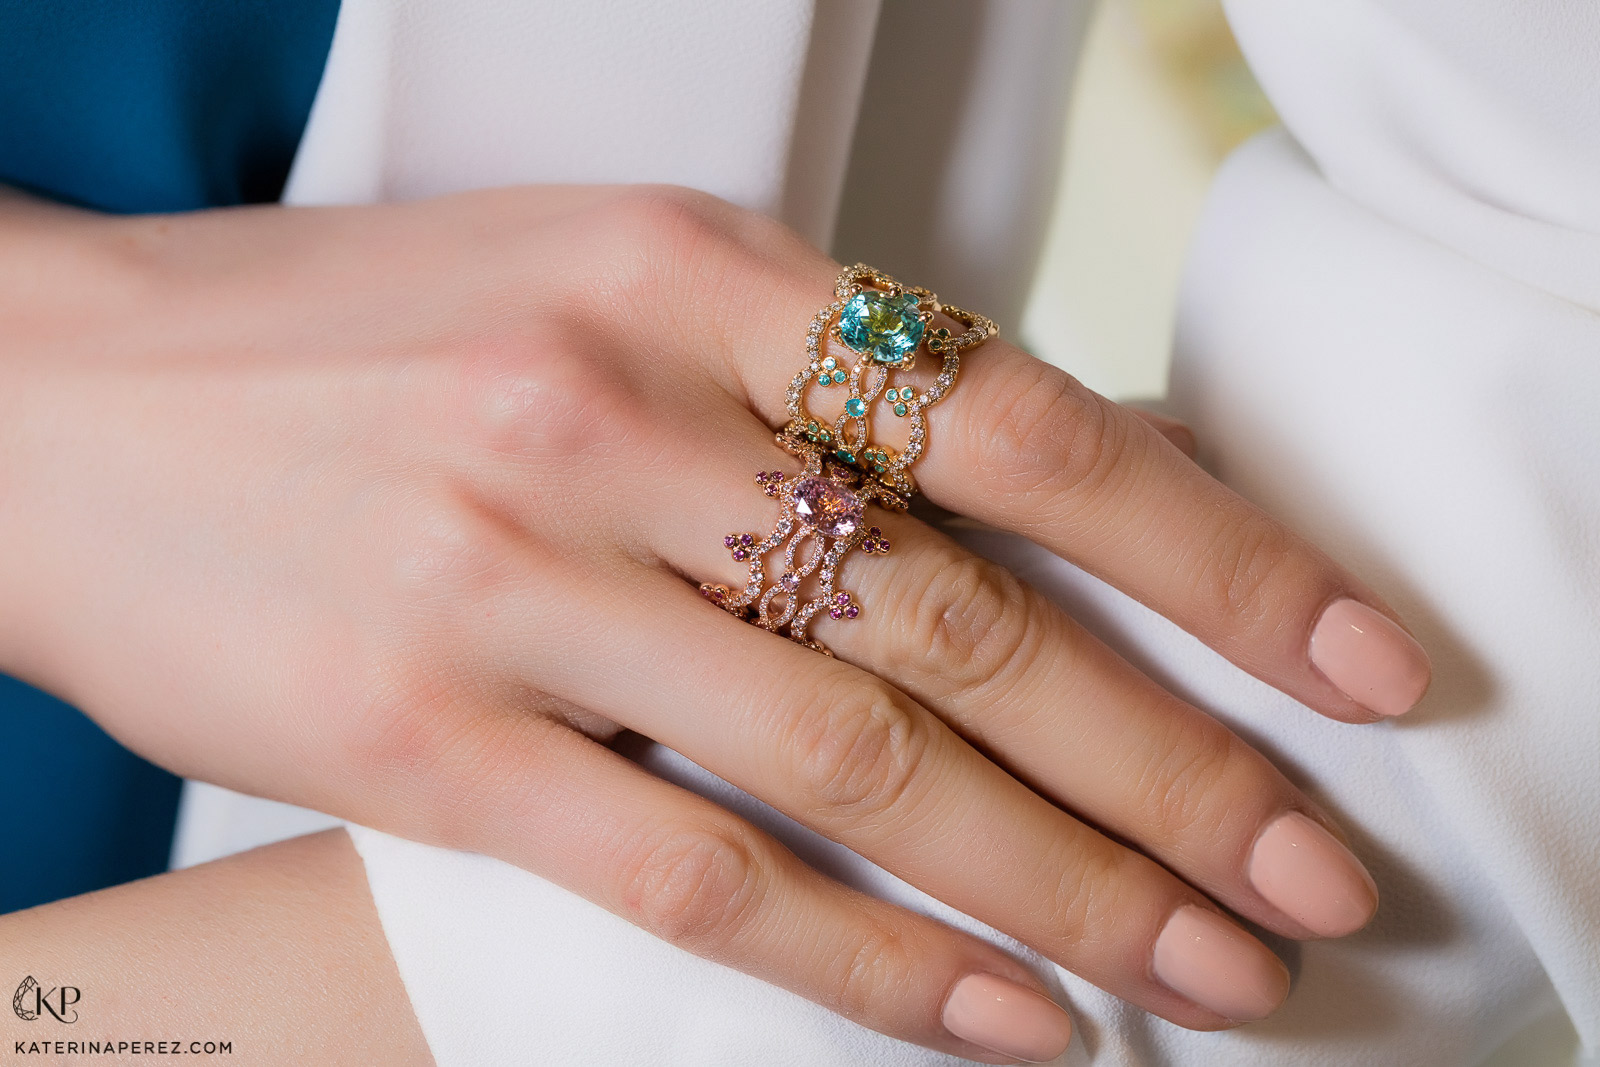 Erica Courtney Crown bands and rings in pink sapphire and paraiba tourmaline. Photo by Simon Martner.